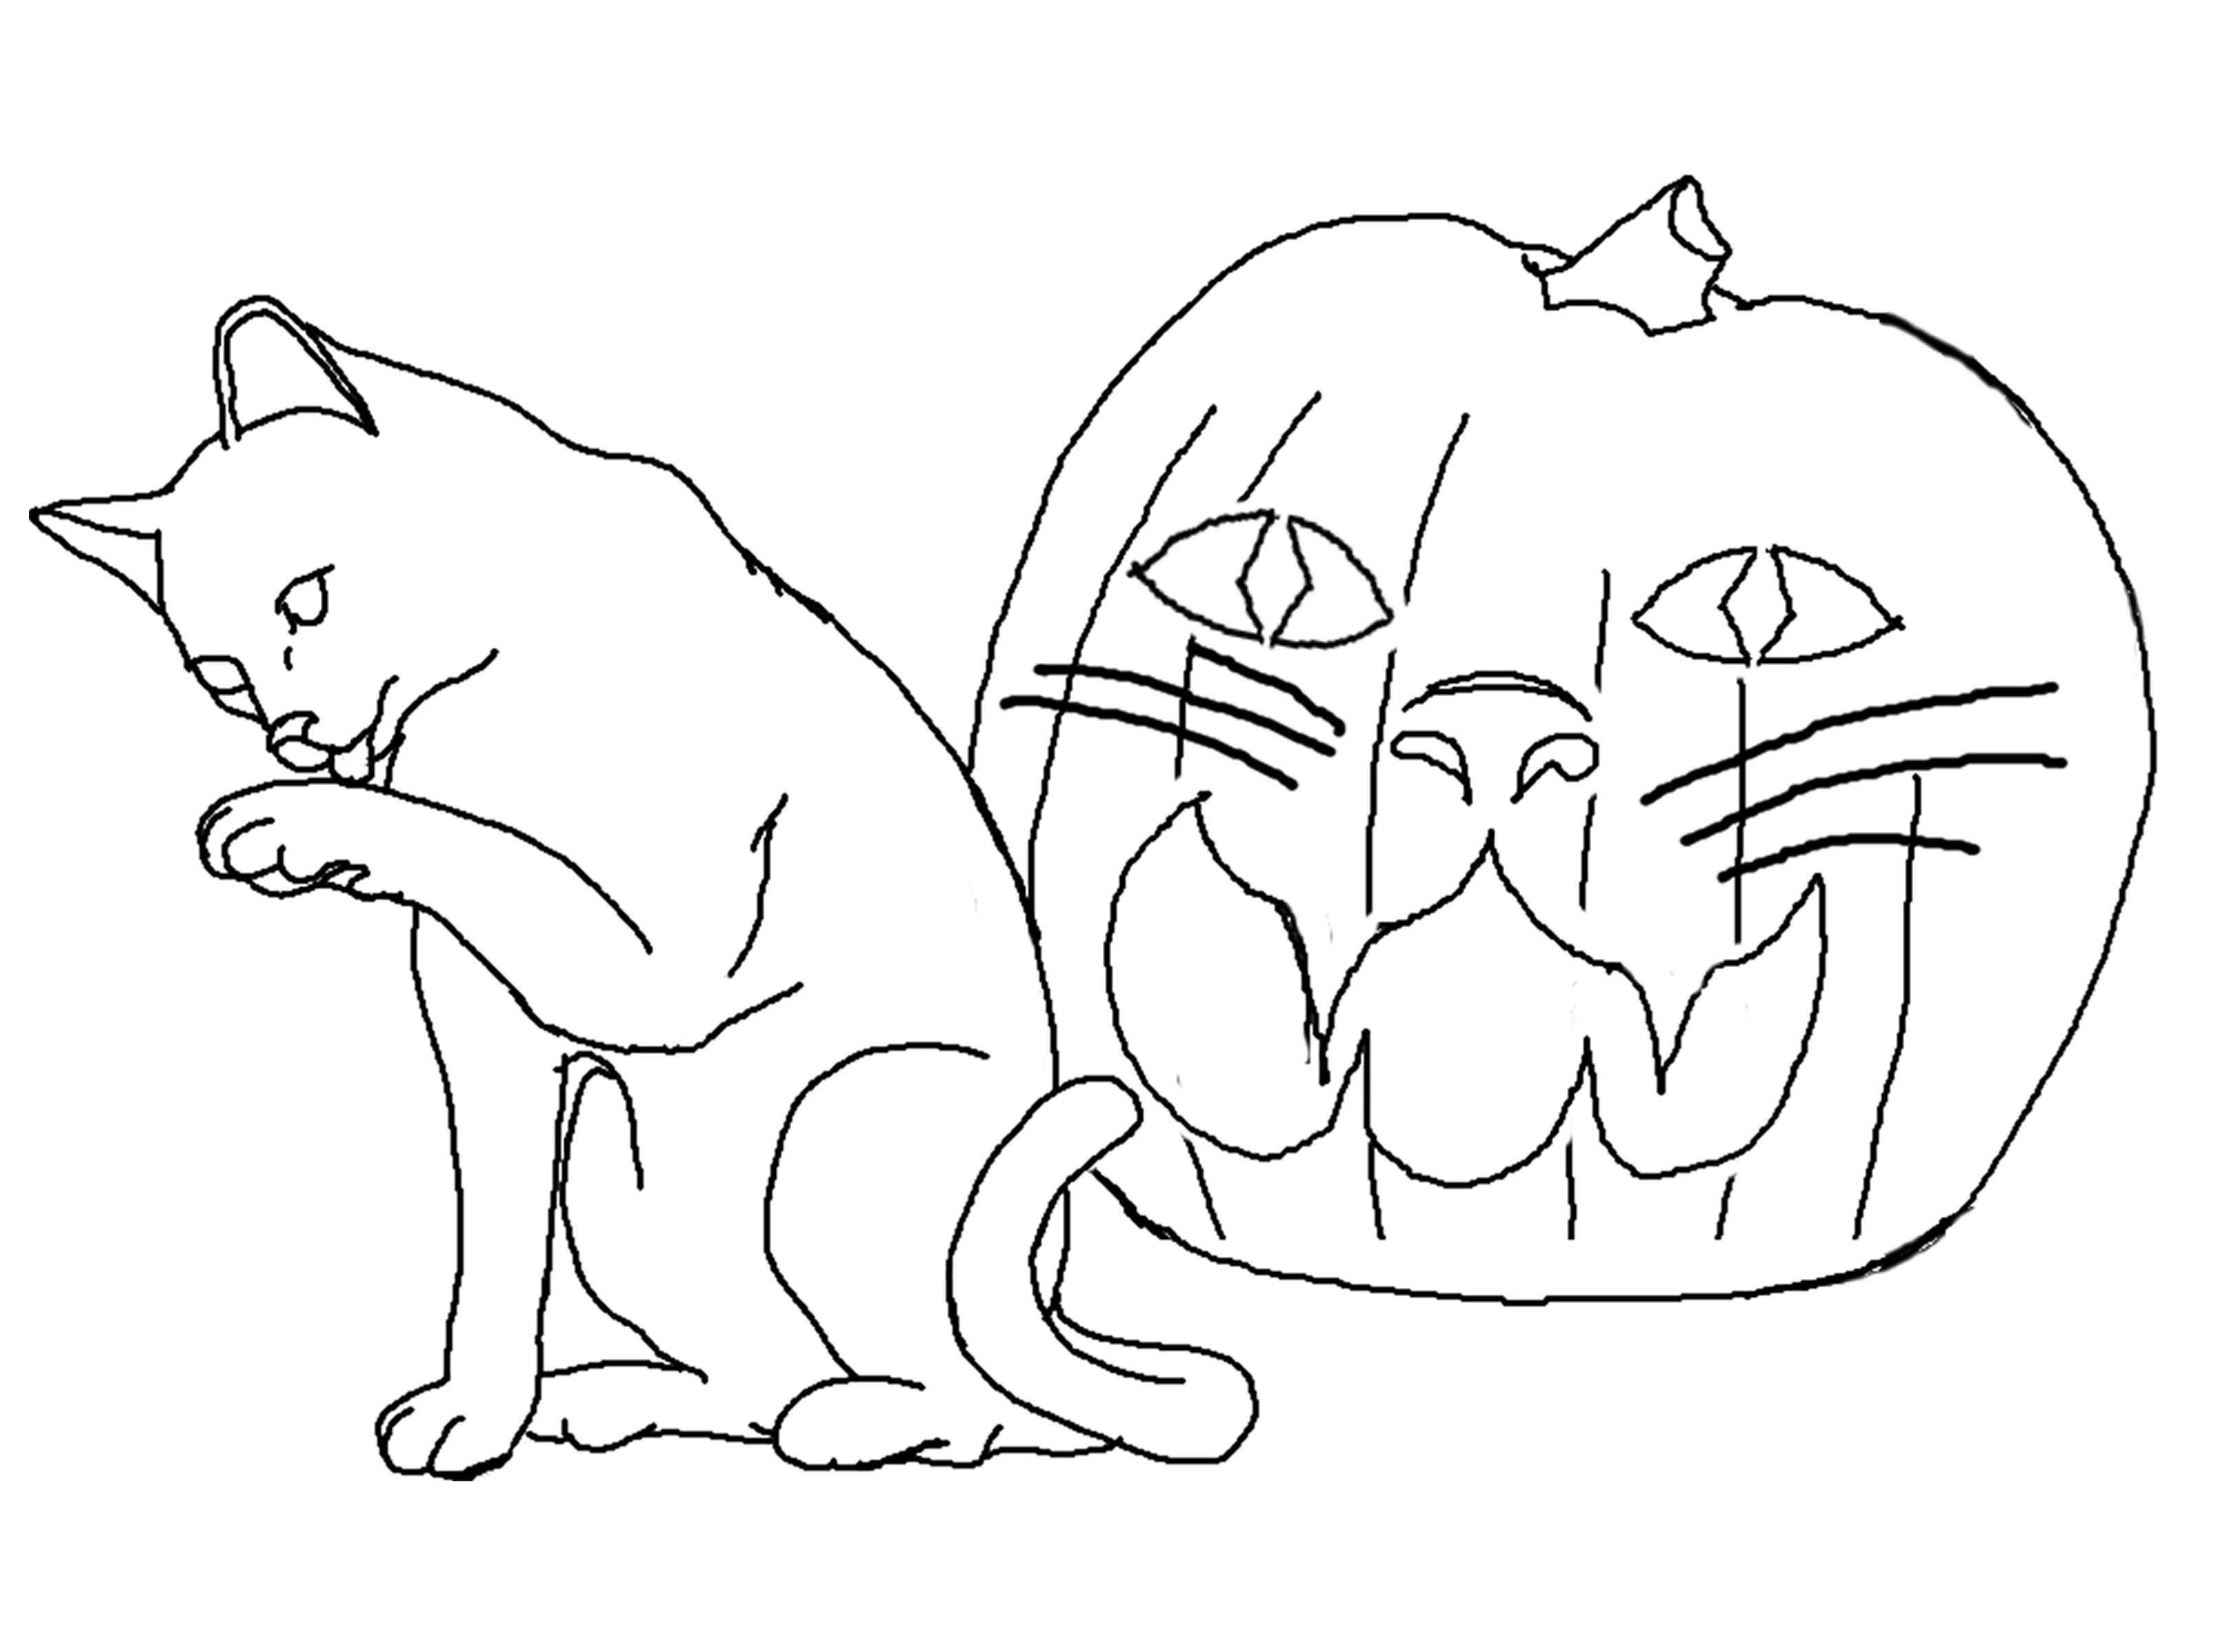 free coloring pictures of cats free printable cat coloring pages for kids coloring free of pictures cats